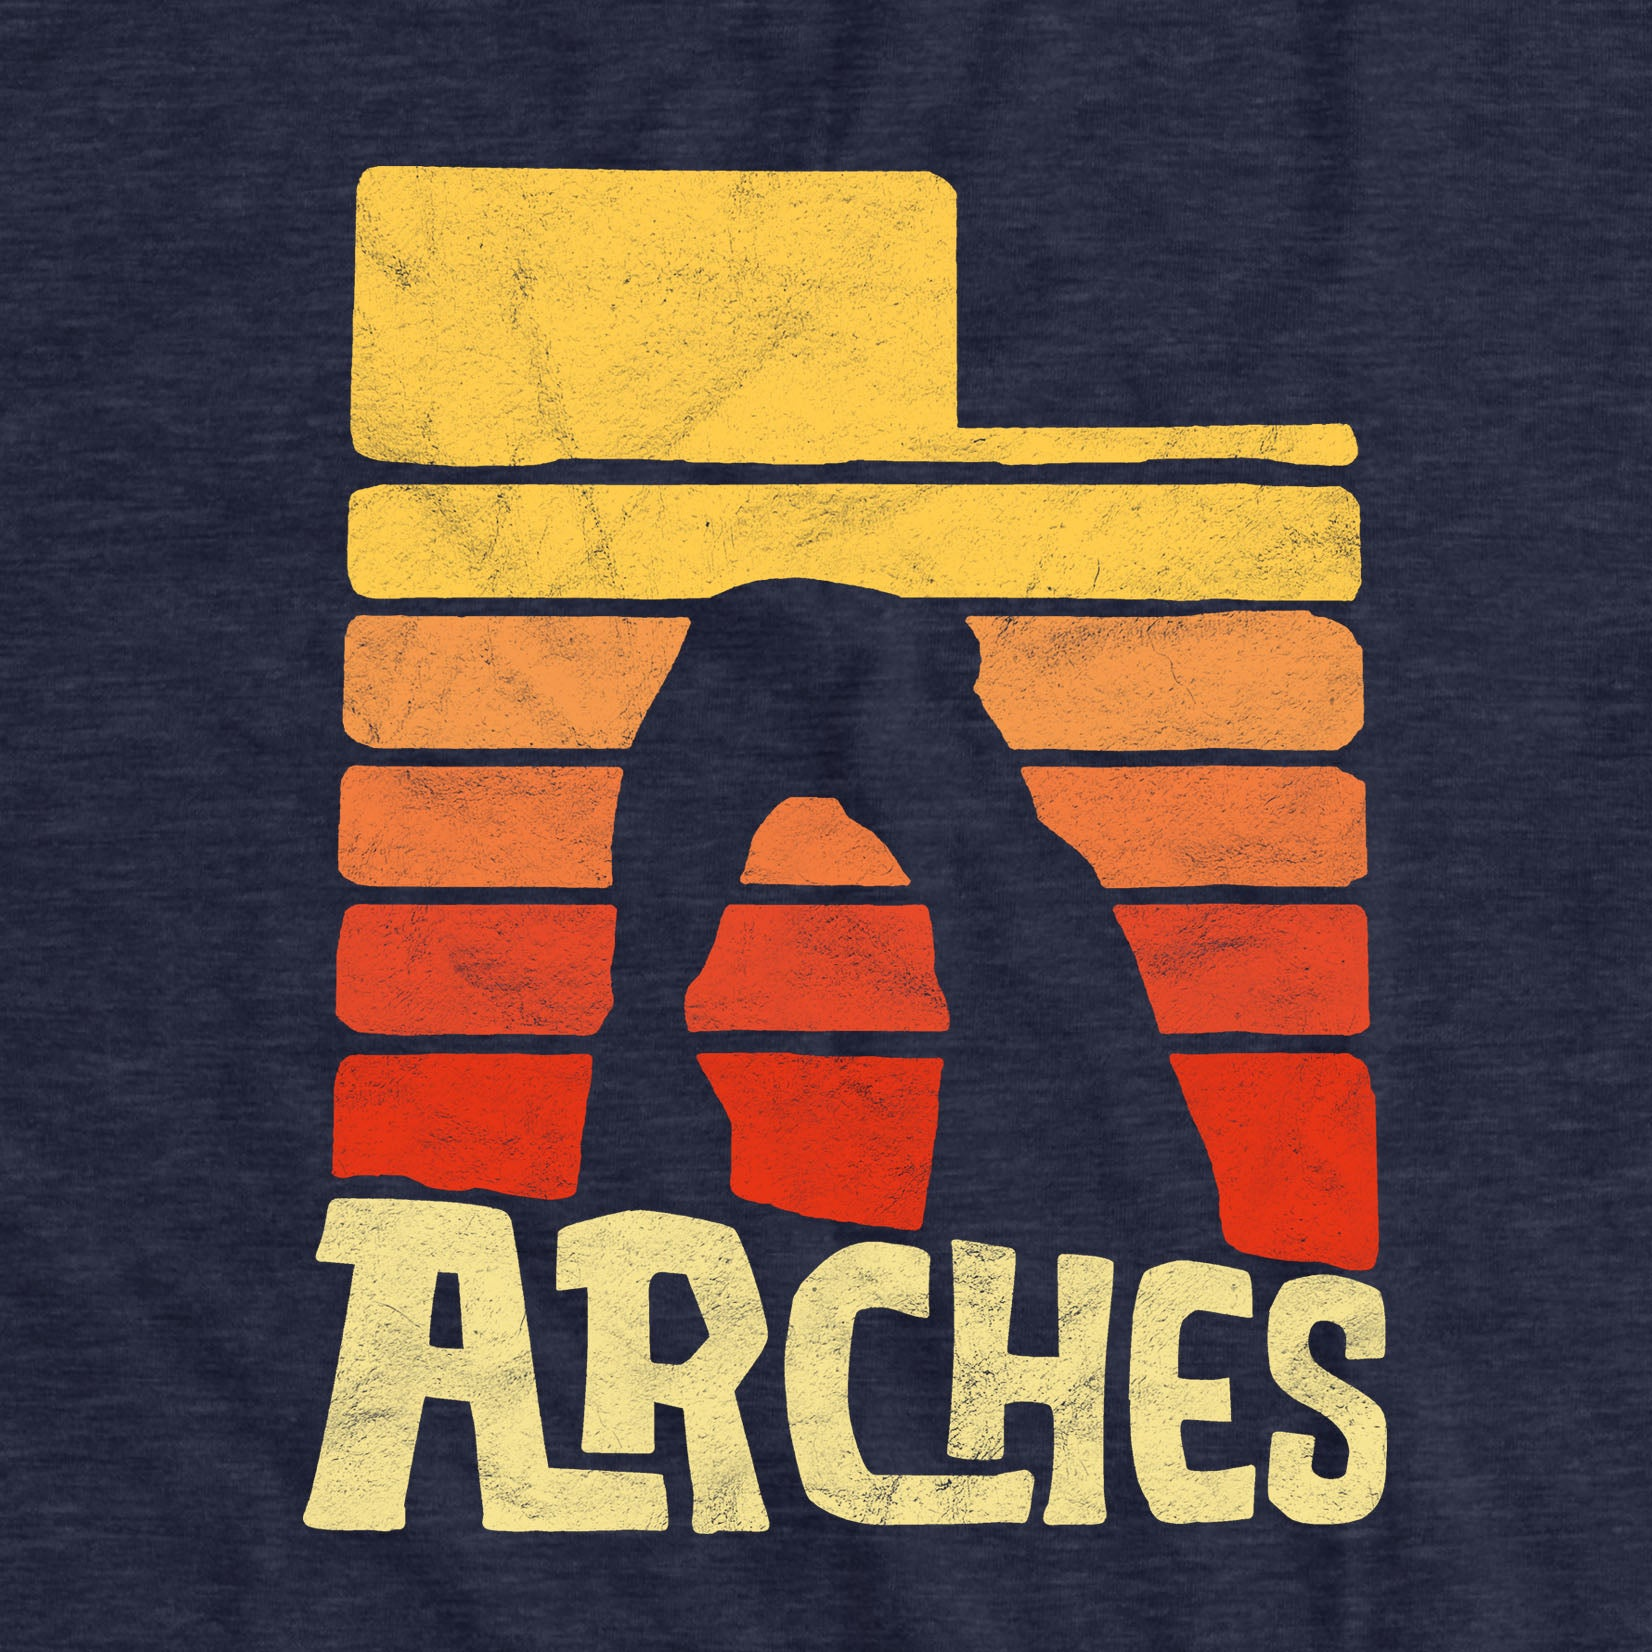 Arches National Park Utah Graphic Design Short-Sleeve Unisex T-Shirt (Heather Navy Color)